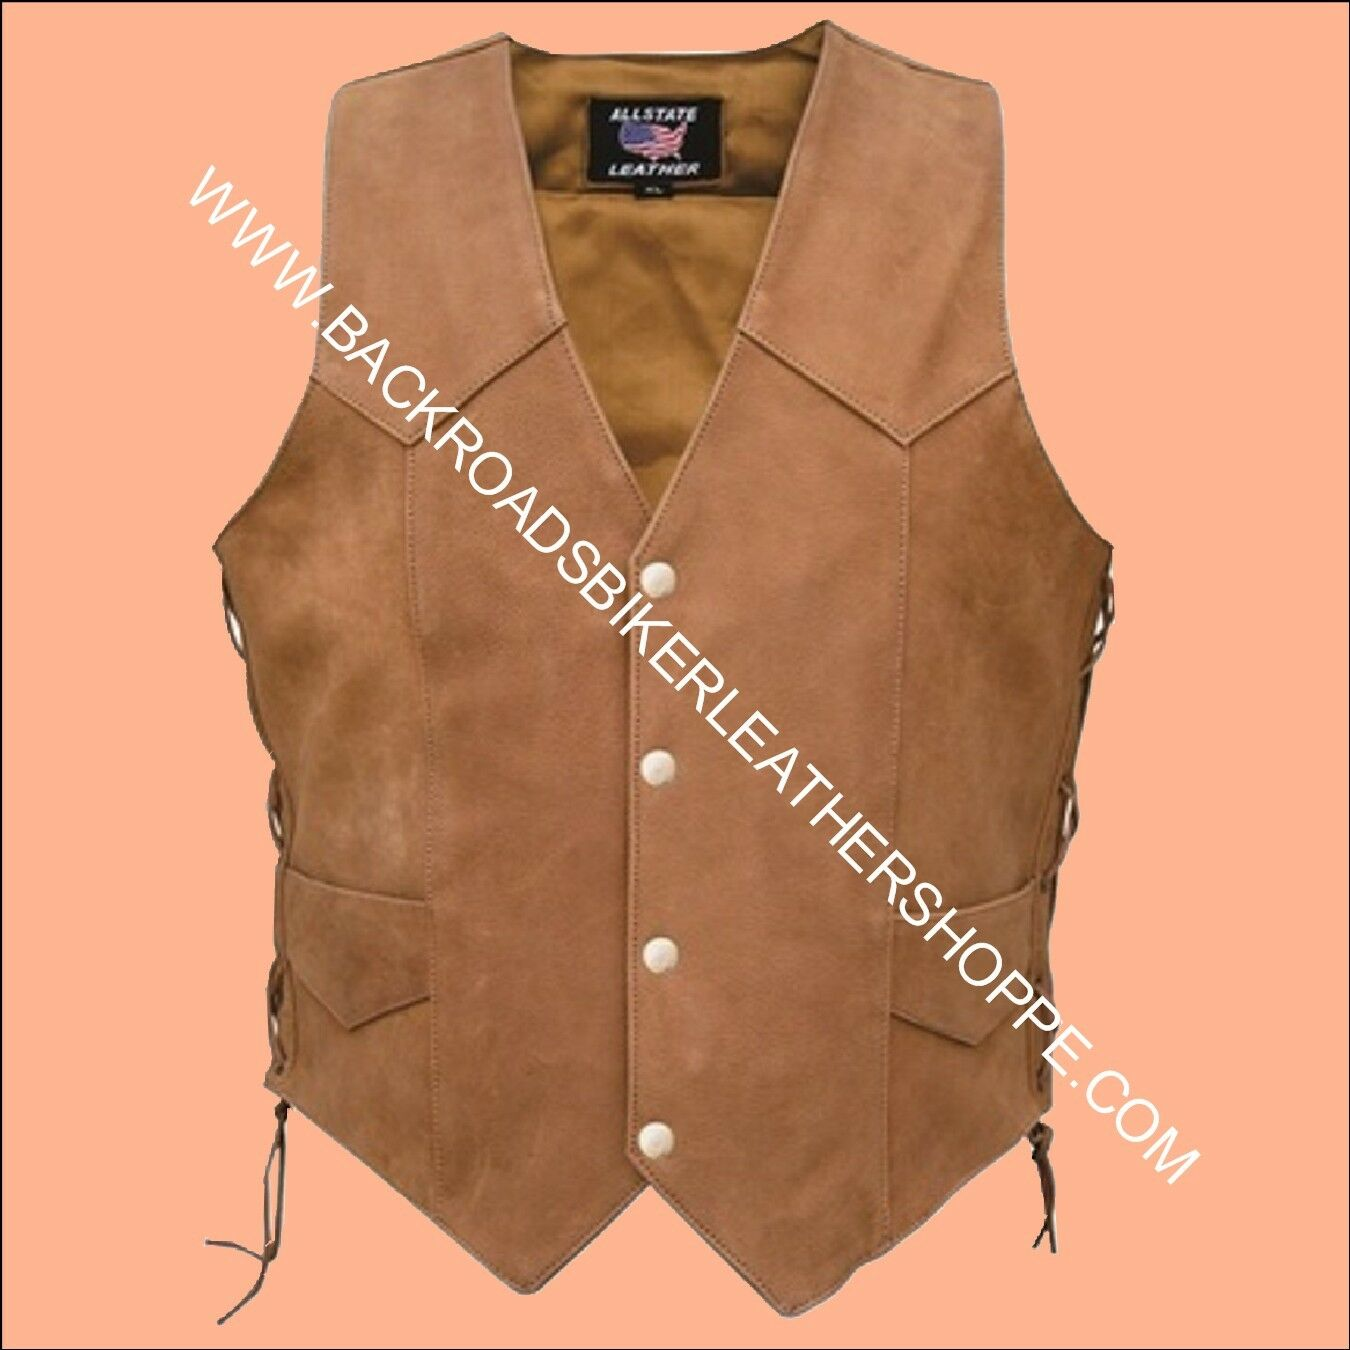 Ladies Women's Brown Leather Motorcycle Biker Vest Western - Sizes XS to 5X